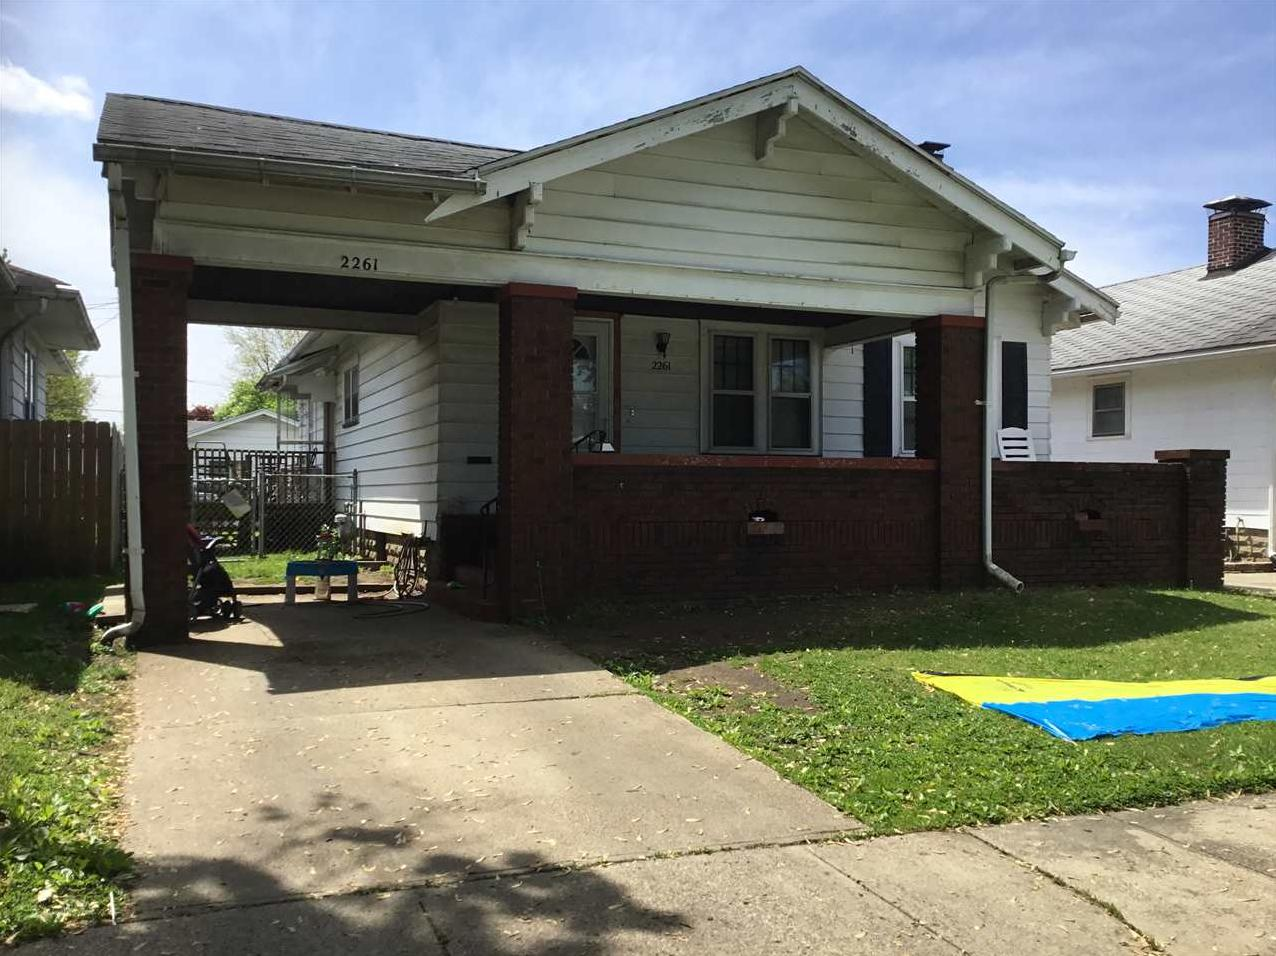 Photo of 2261 Crawford Street Terre Haute IN 47803